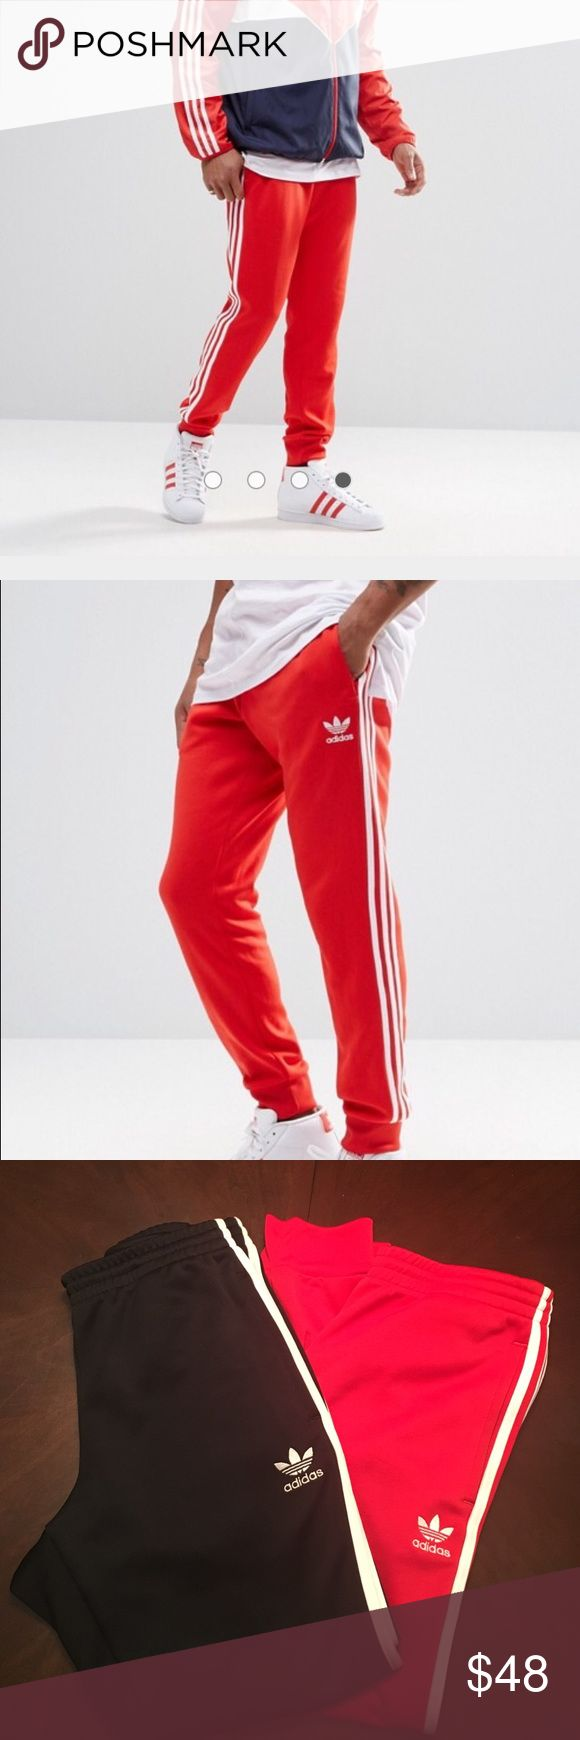 MEN's Adidas Originals Trefoil Cuffed Joggers Great pair of Adidas joggers just in time for Fall! Worn 2/3x! Excellent Condition! ⭐️⭐️ 2 pair! Red and Black Adidas Pants Sweatpants & Joggers